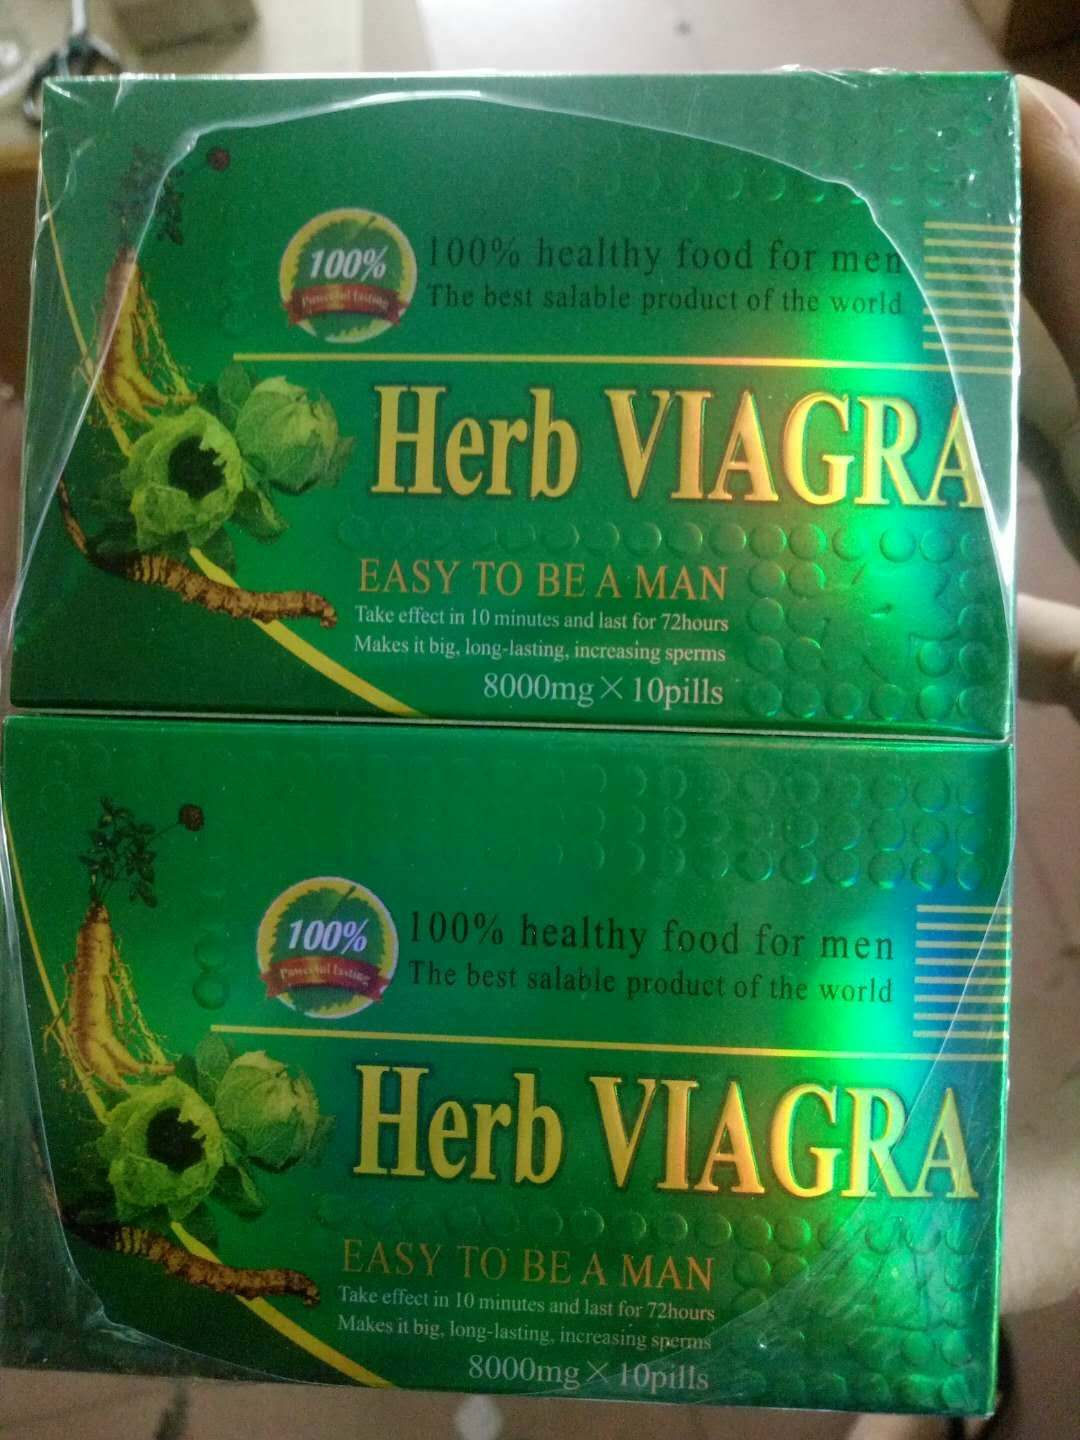 Herb Viagra 100 Healthy Food For Men Sex Products Male Enlargement